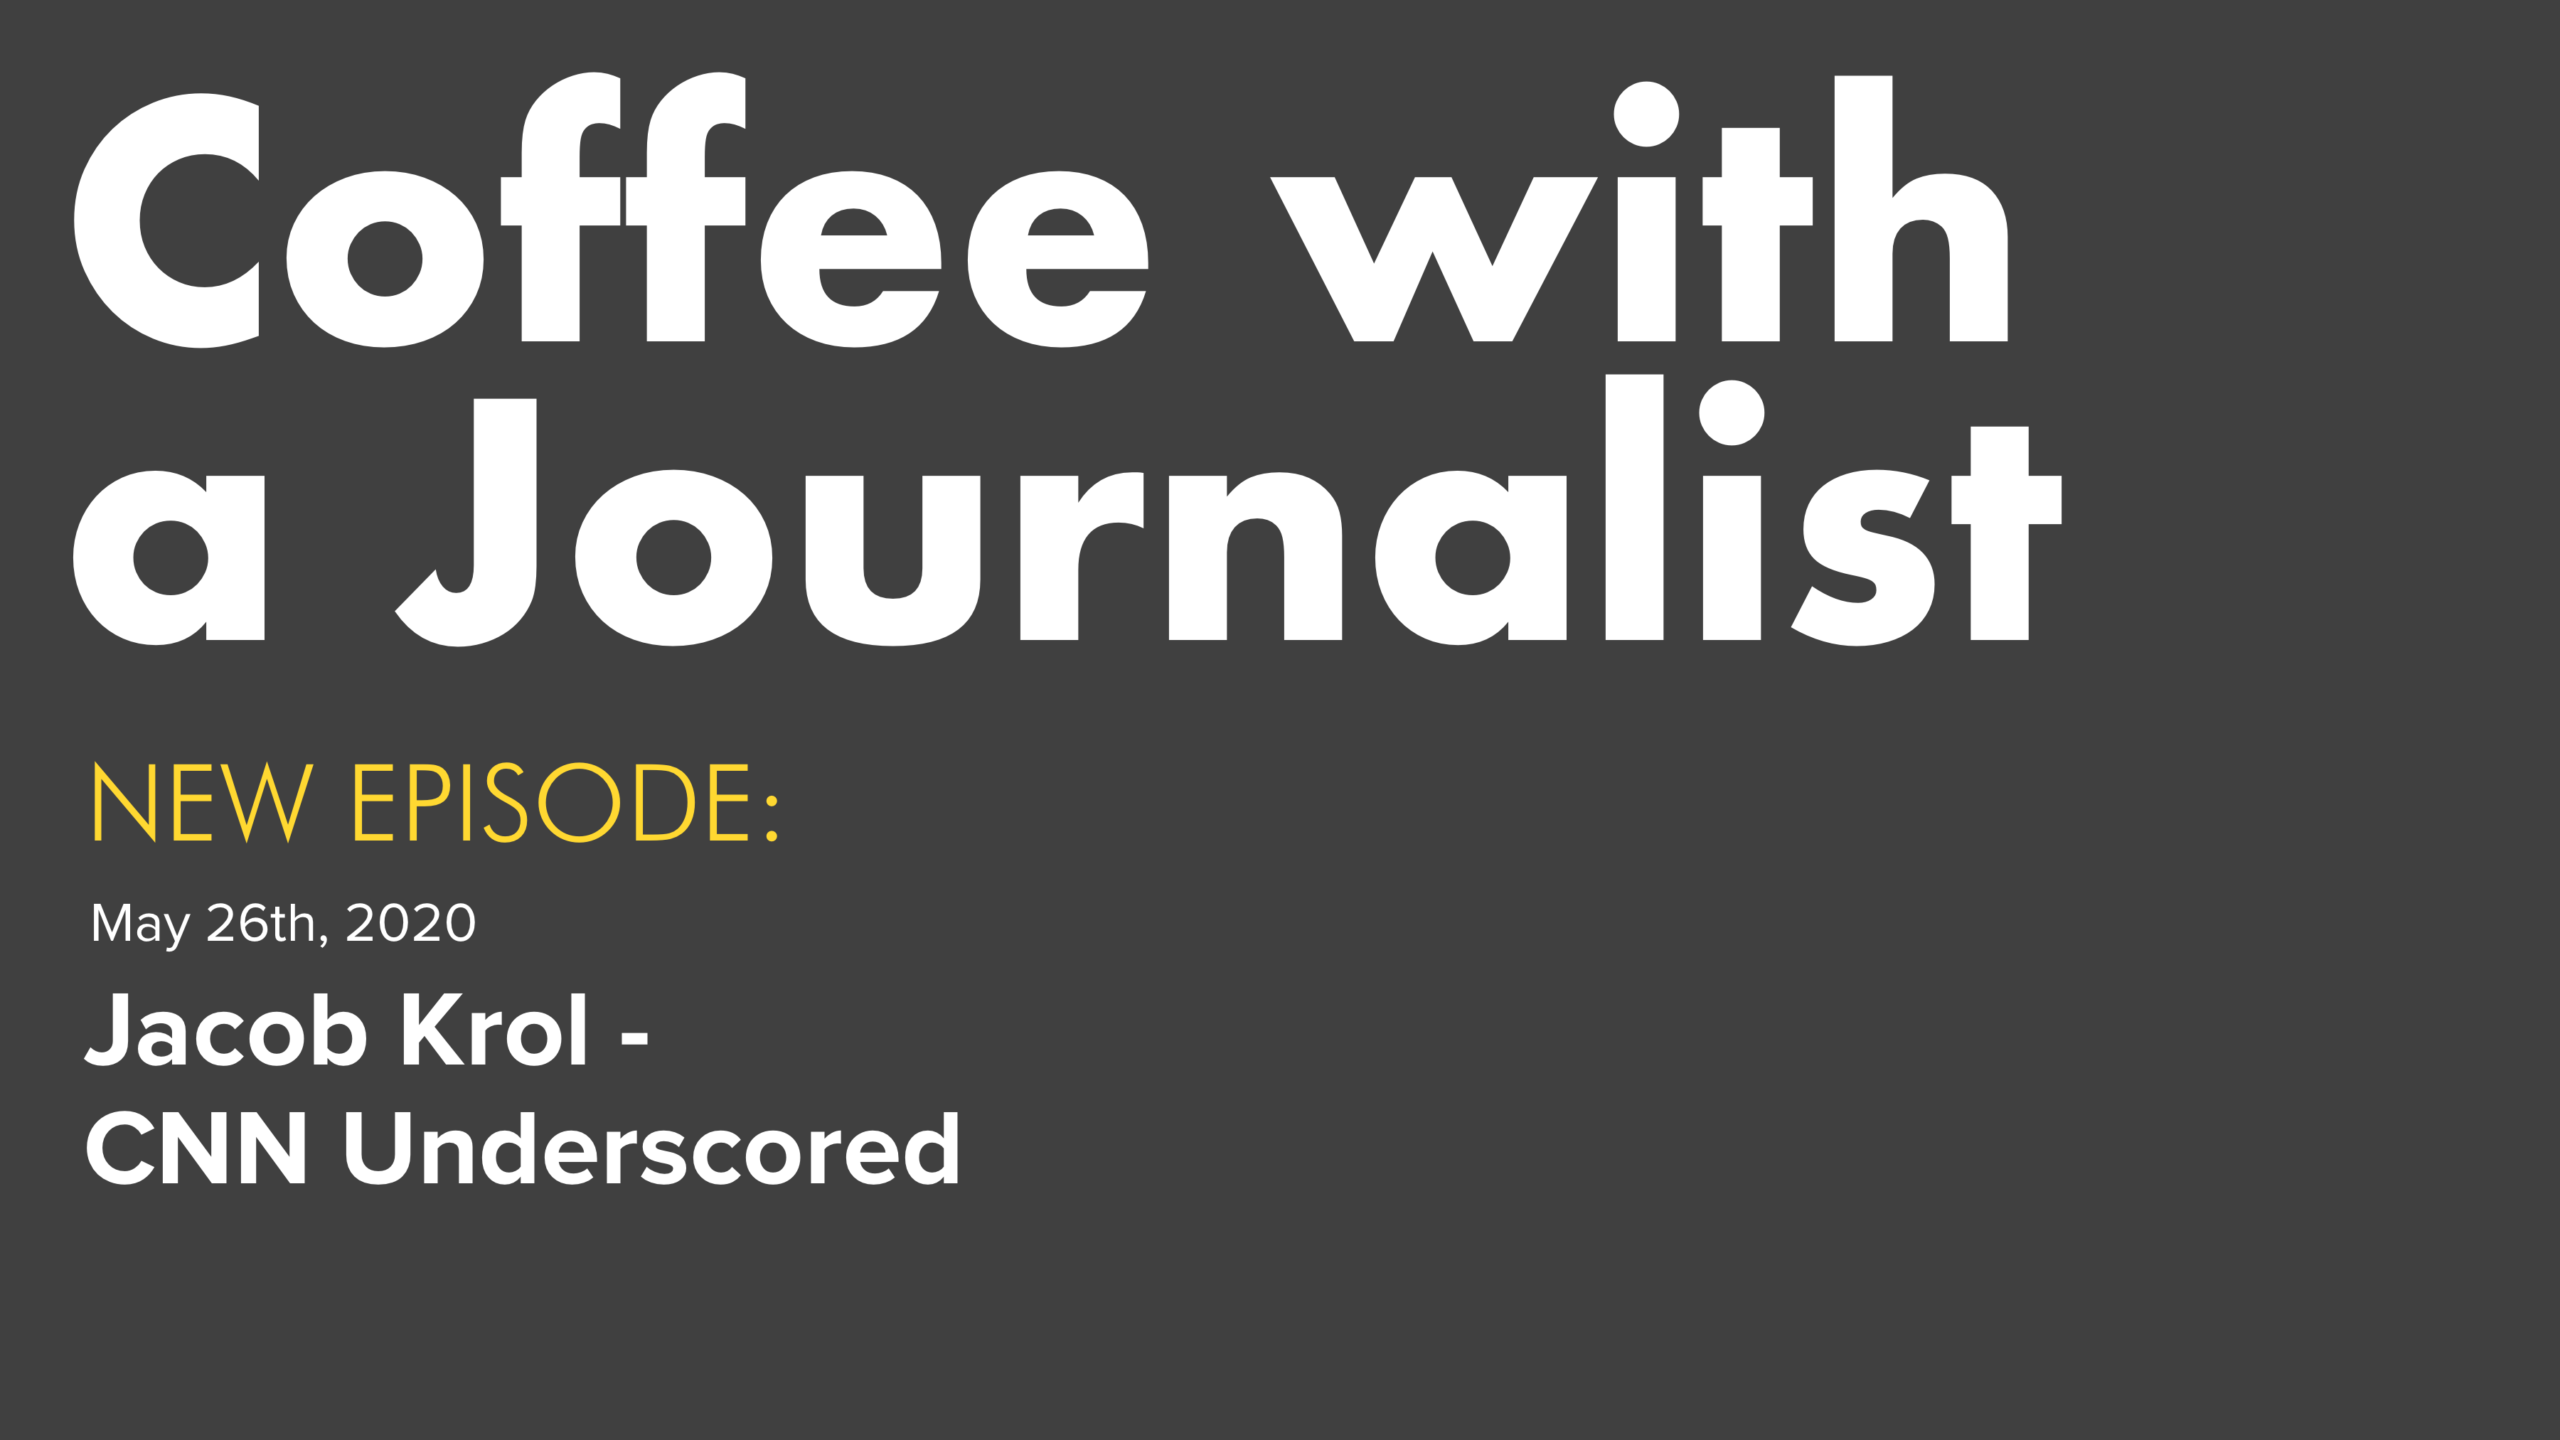 Coffee With A Journalist - Jacob Krol CNN Underscored